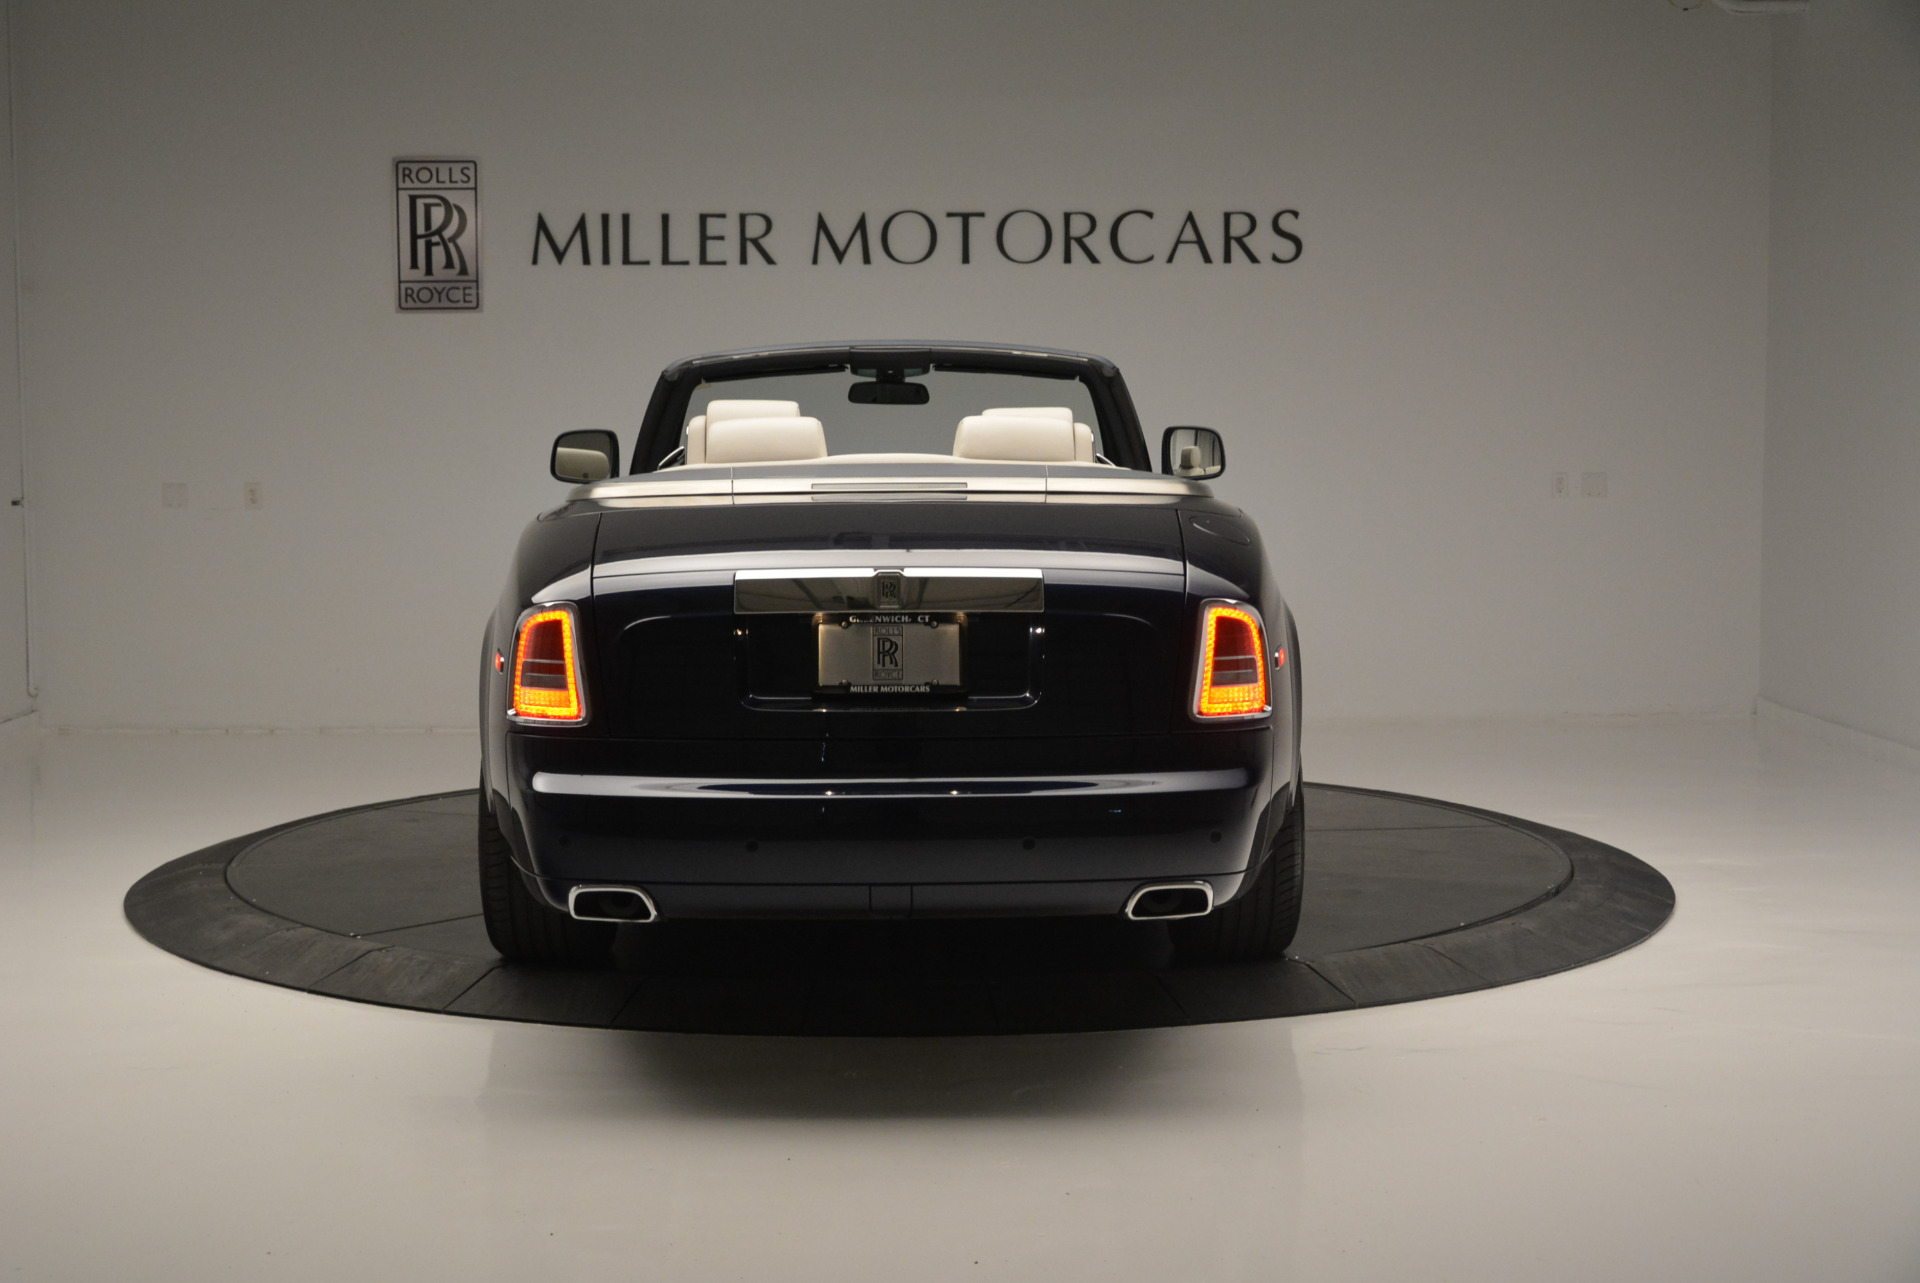 Used 2014 Rolls-Royce Phantom Drophead Coupe  For Sale In Westport, CT 2356_p4